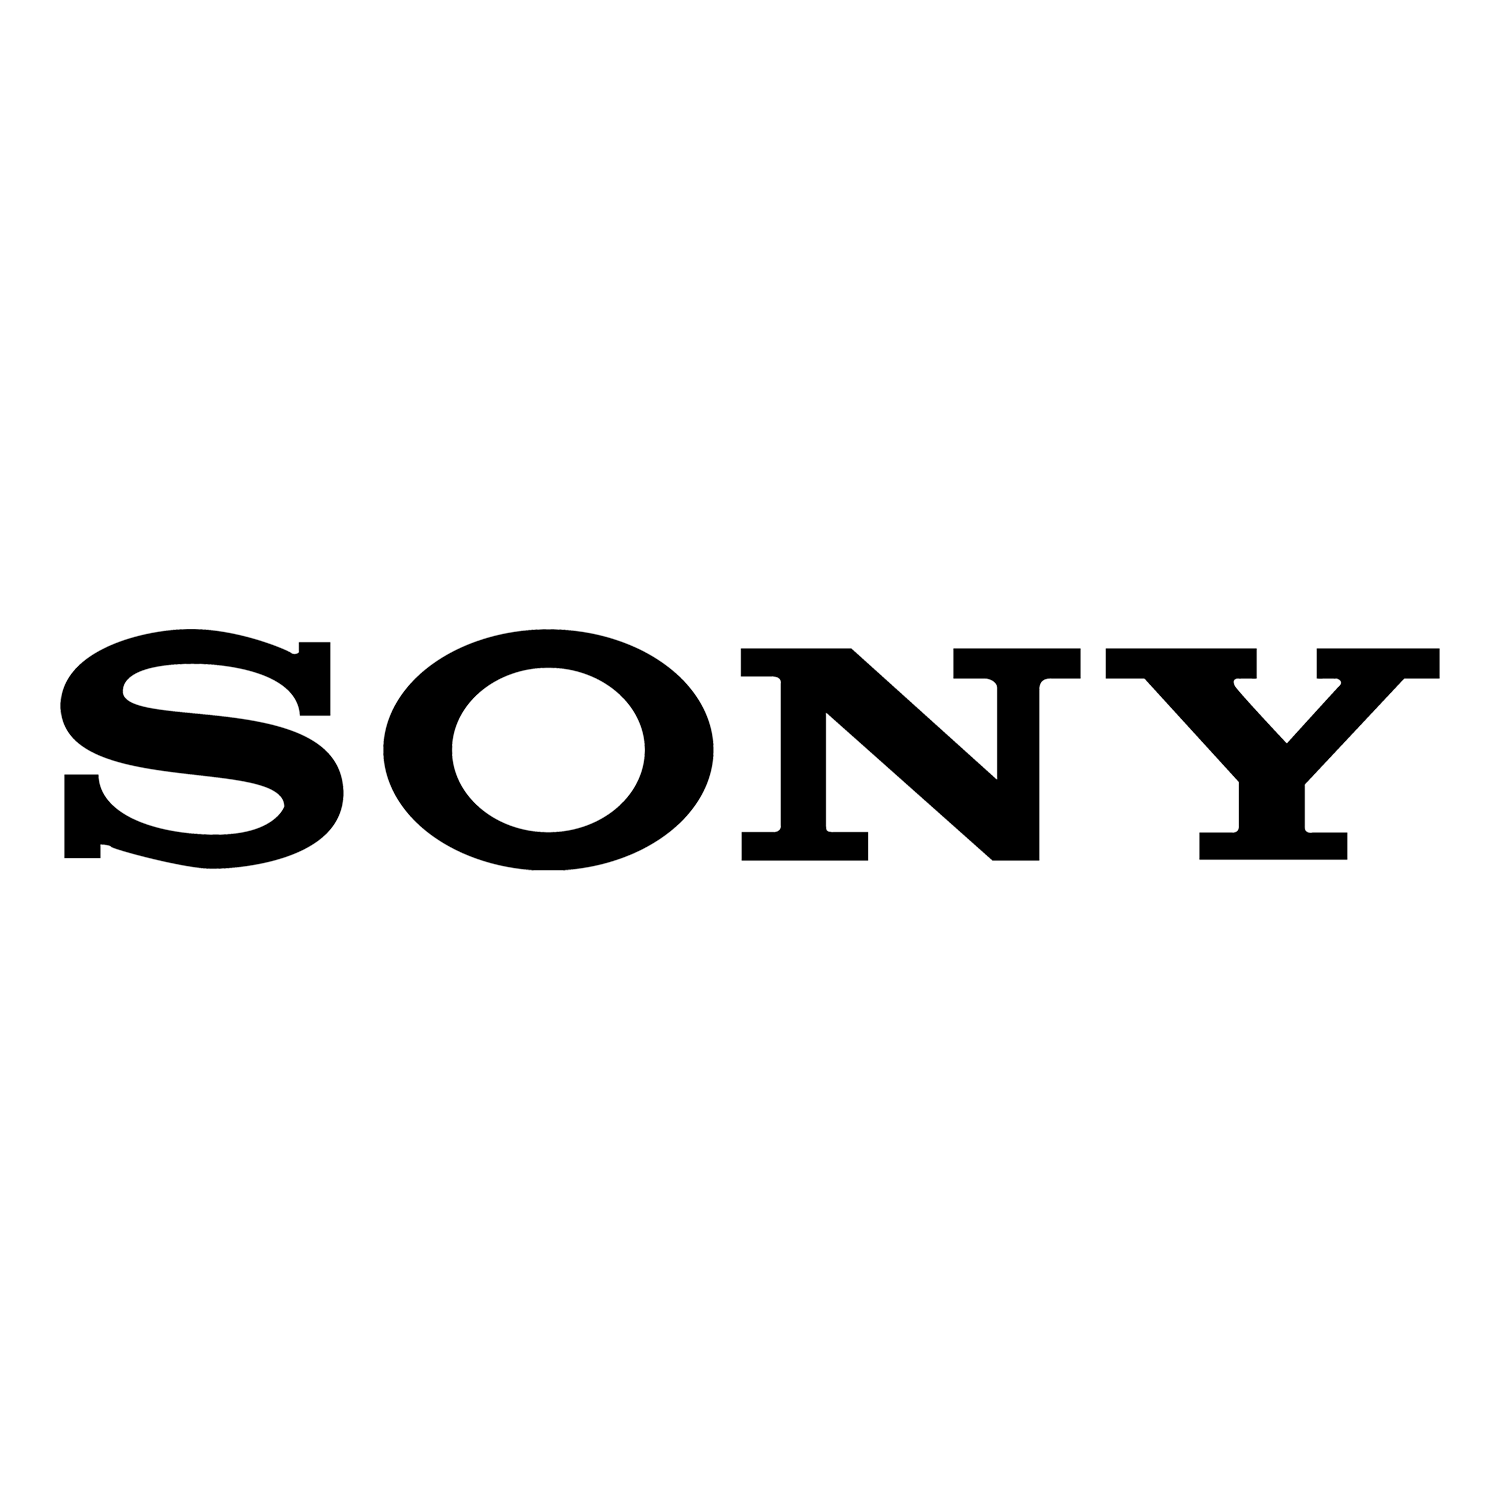 sony web.png